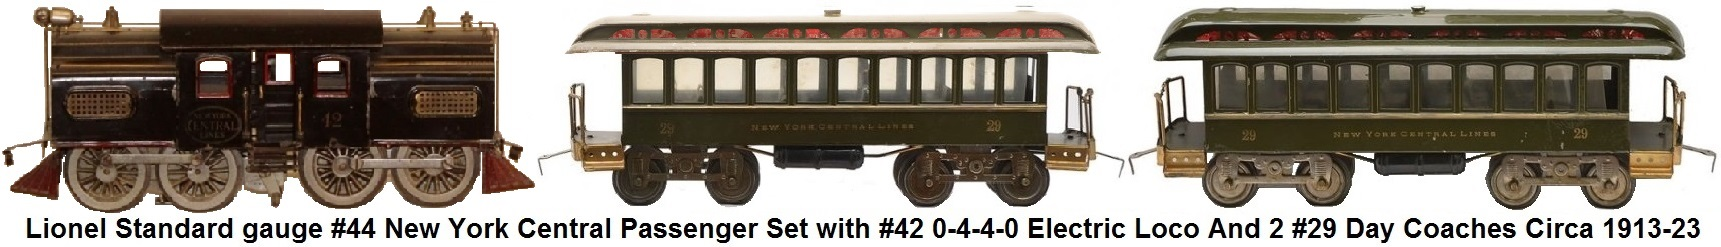 Lionel Standard gauge #44 Passenger set with #42 0-4-4-0 Locomotive and 2 #29 dark olive green day coaches each with ten windows made 1913-23